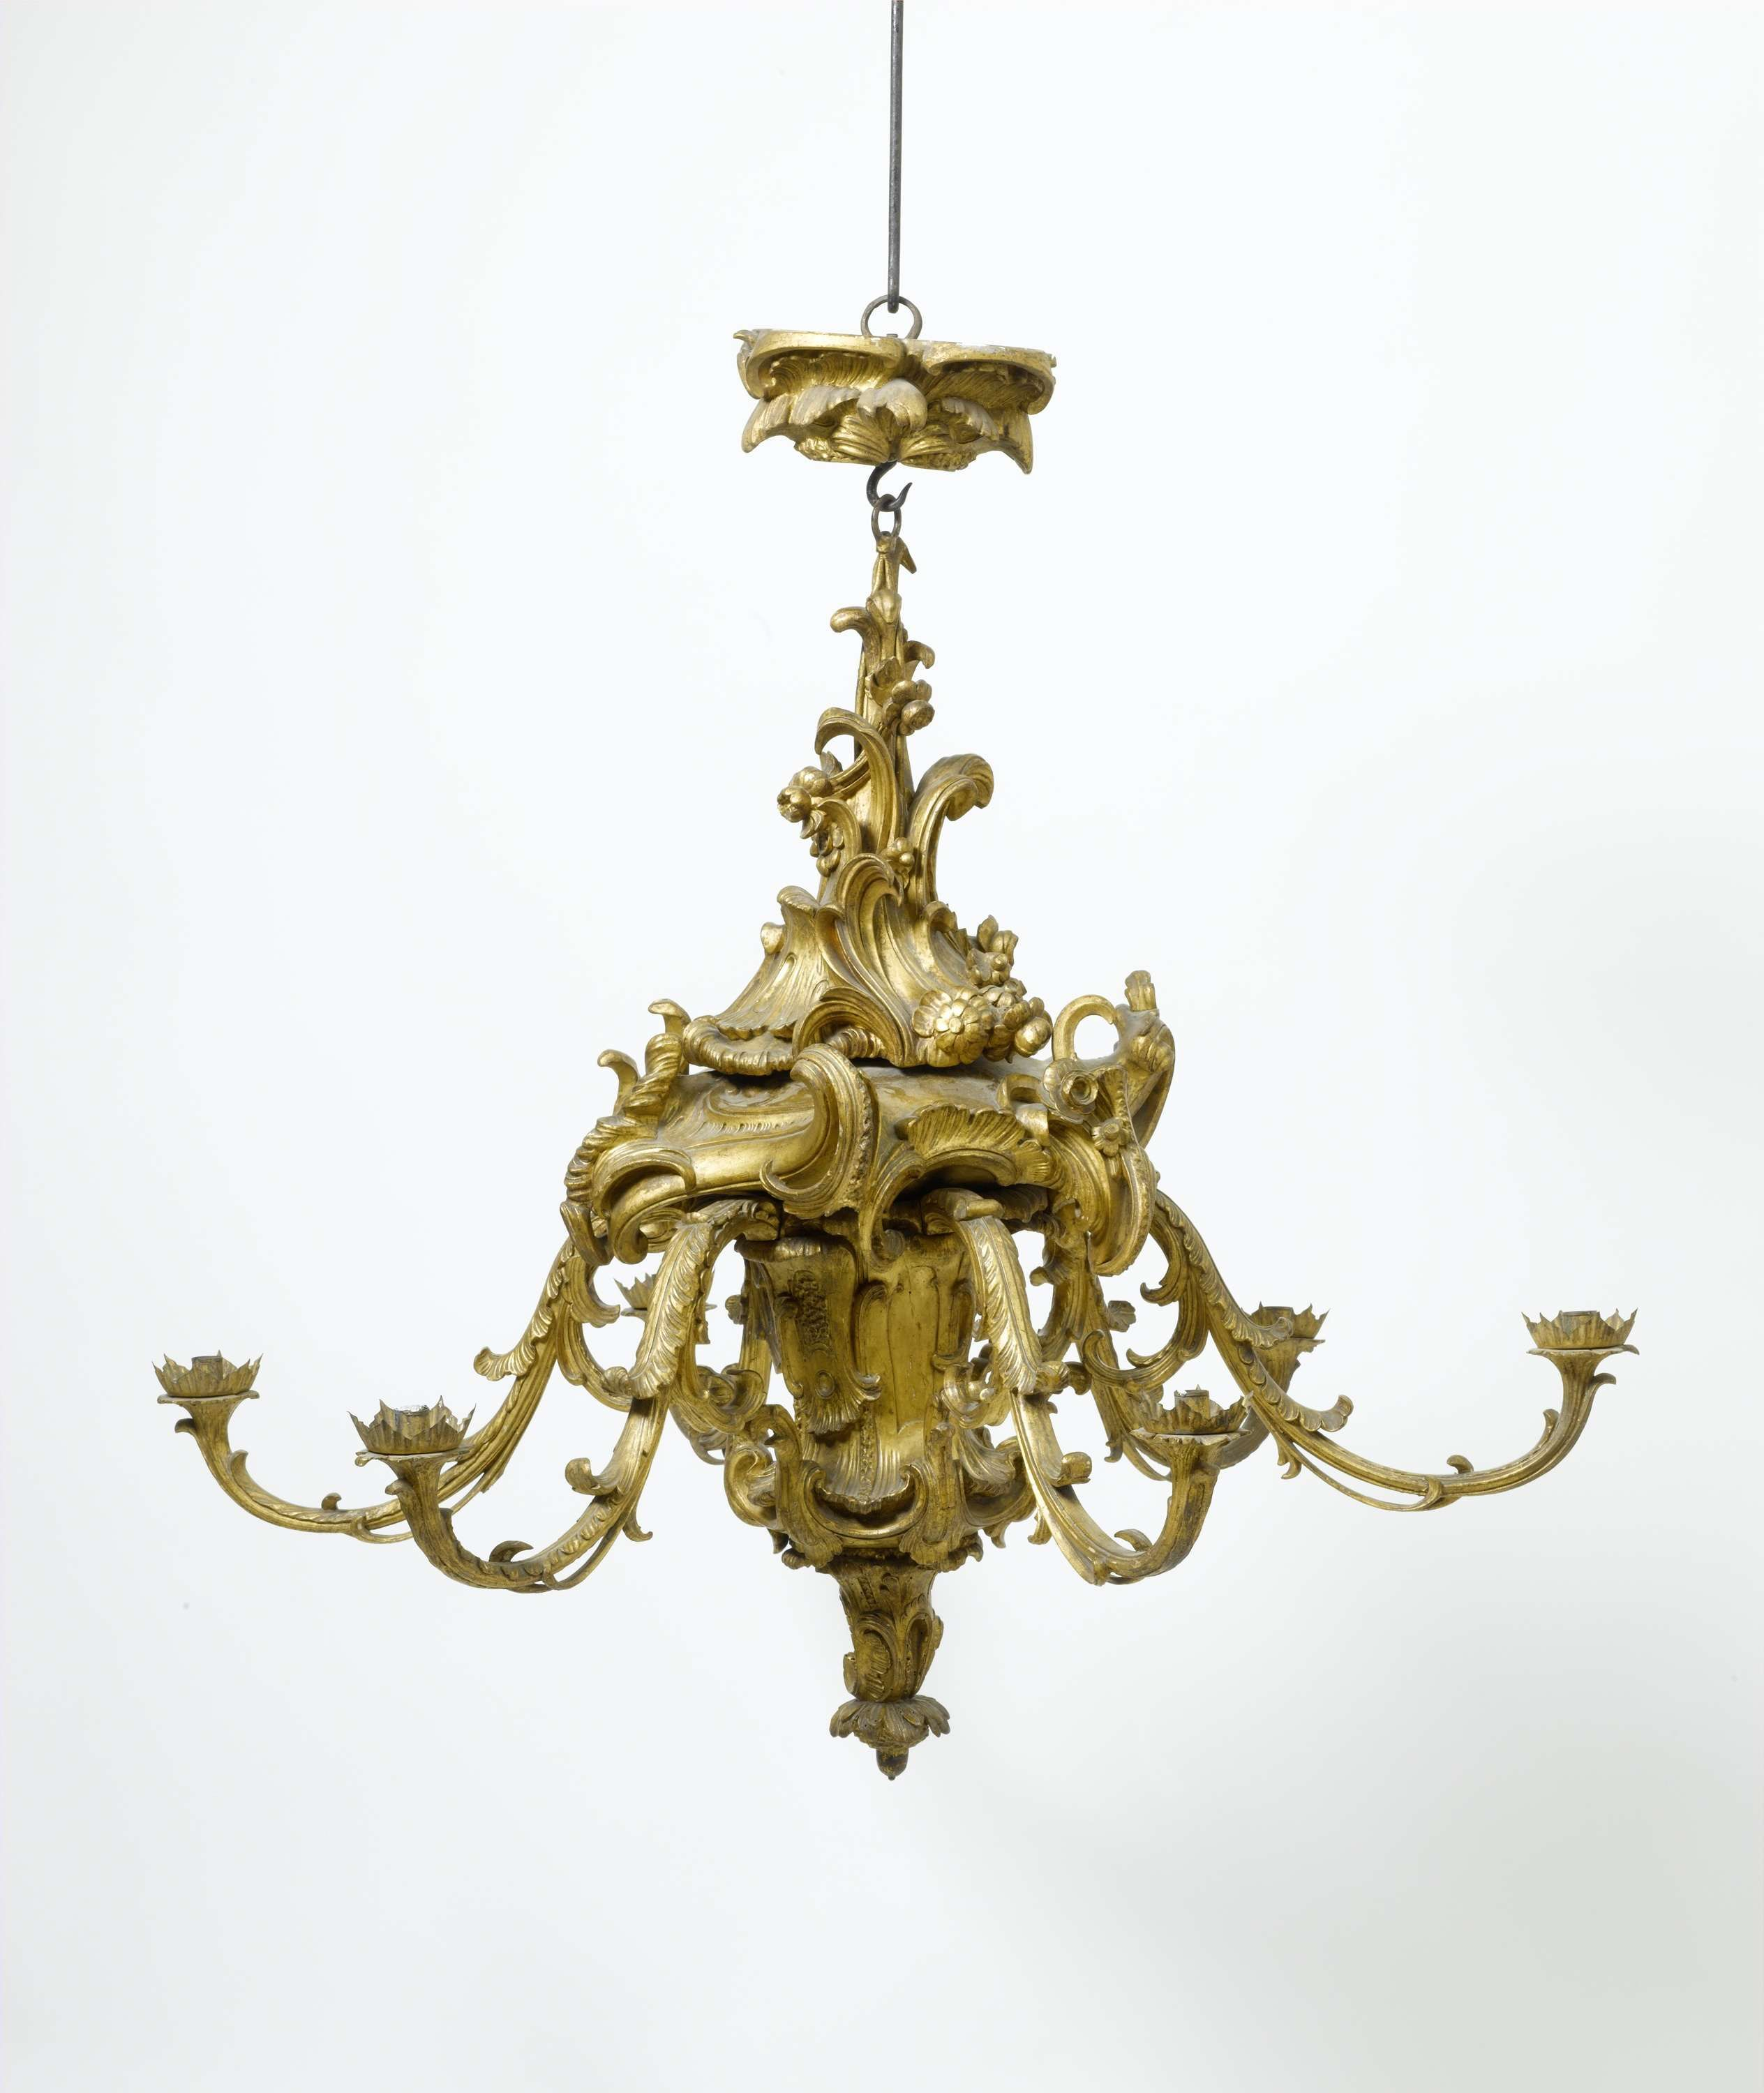 Chandelier Anonymous C 1750 C 1770 Rijksmuseum Chandelier Antique Chandelier Lamp